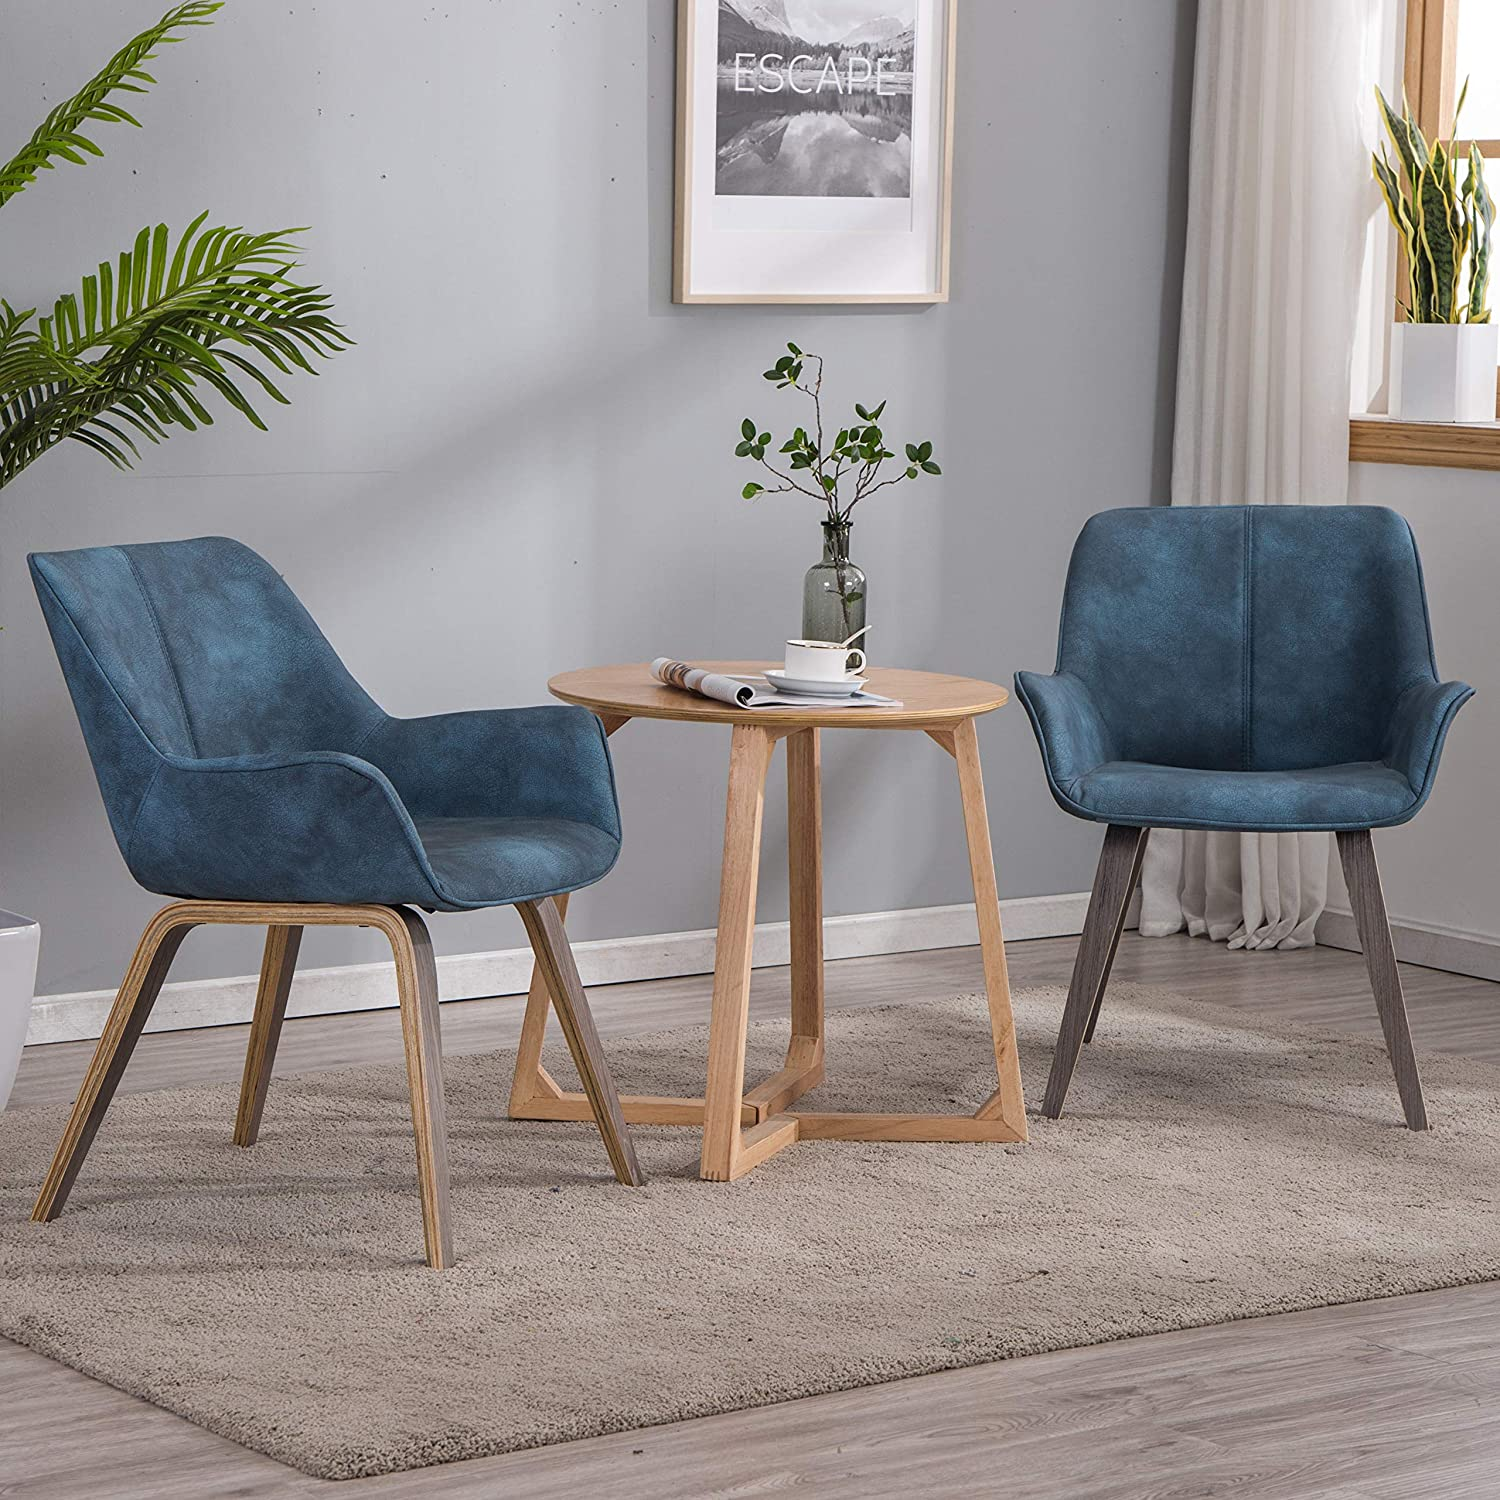 YEEFY Blue Leather and Wood Oak Living Room Chairs Upholstered Accent  Chairs Set of 5 (Blue)